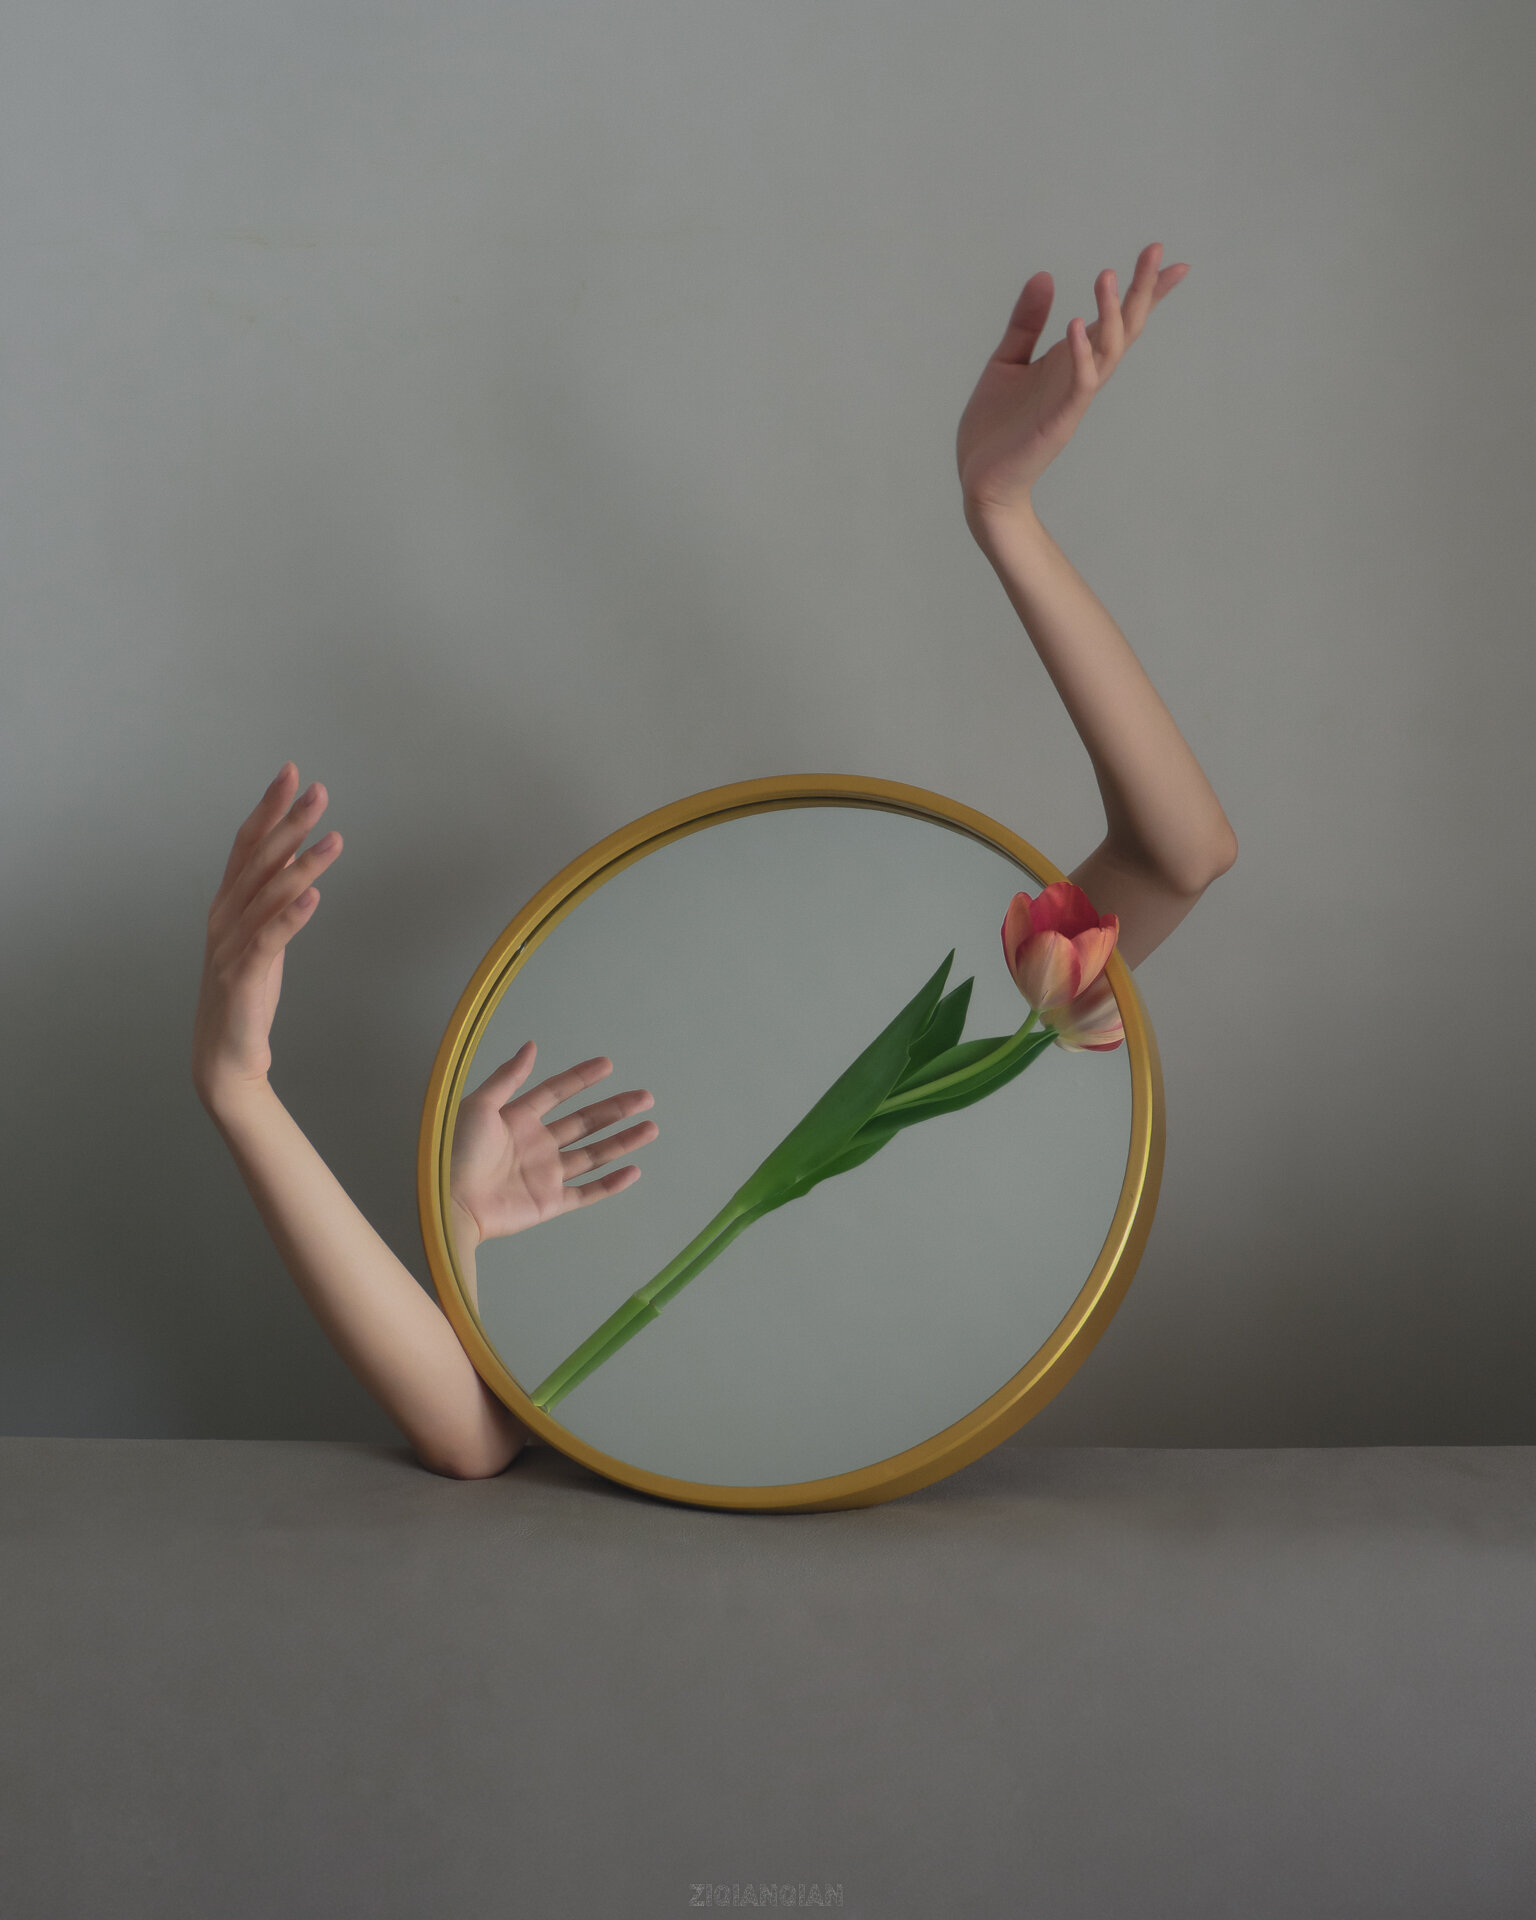 An art photograph where w a circular mirror has a tulip laying across it, and two arms come out of either side, with one hand reflected in the mirror. It looks slightly broken and mournful, but lovely.